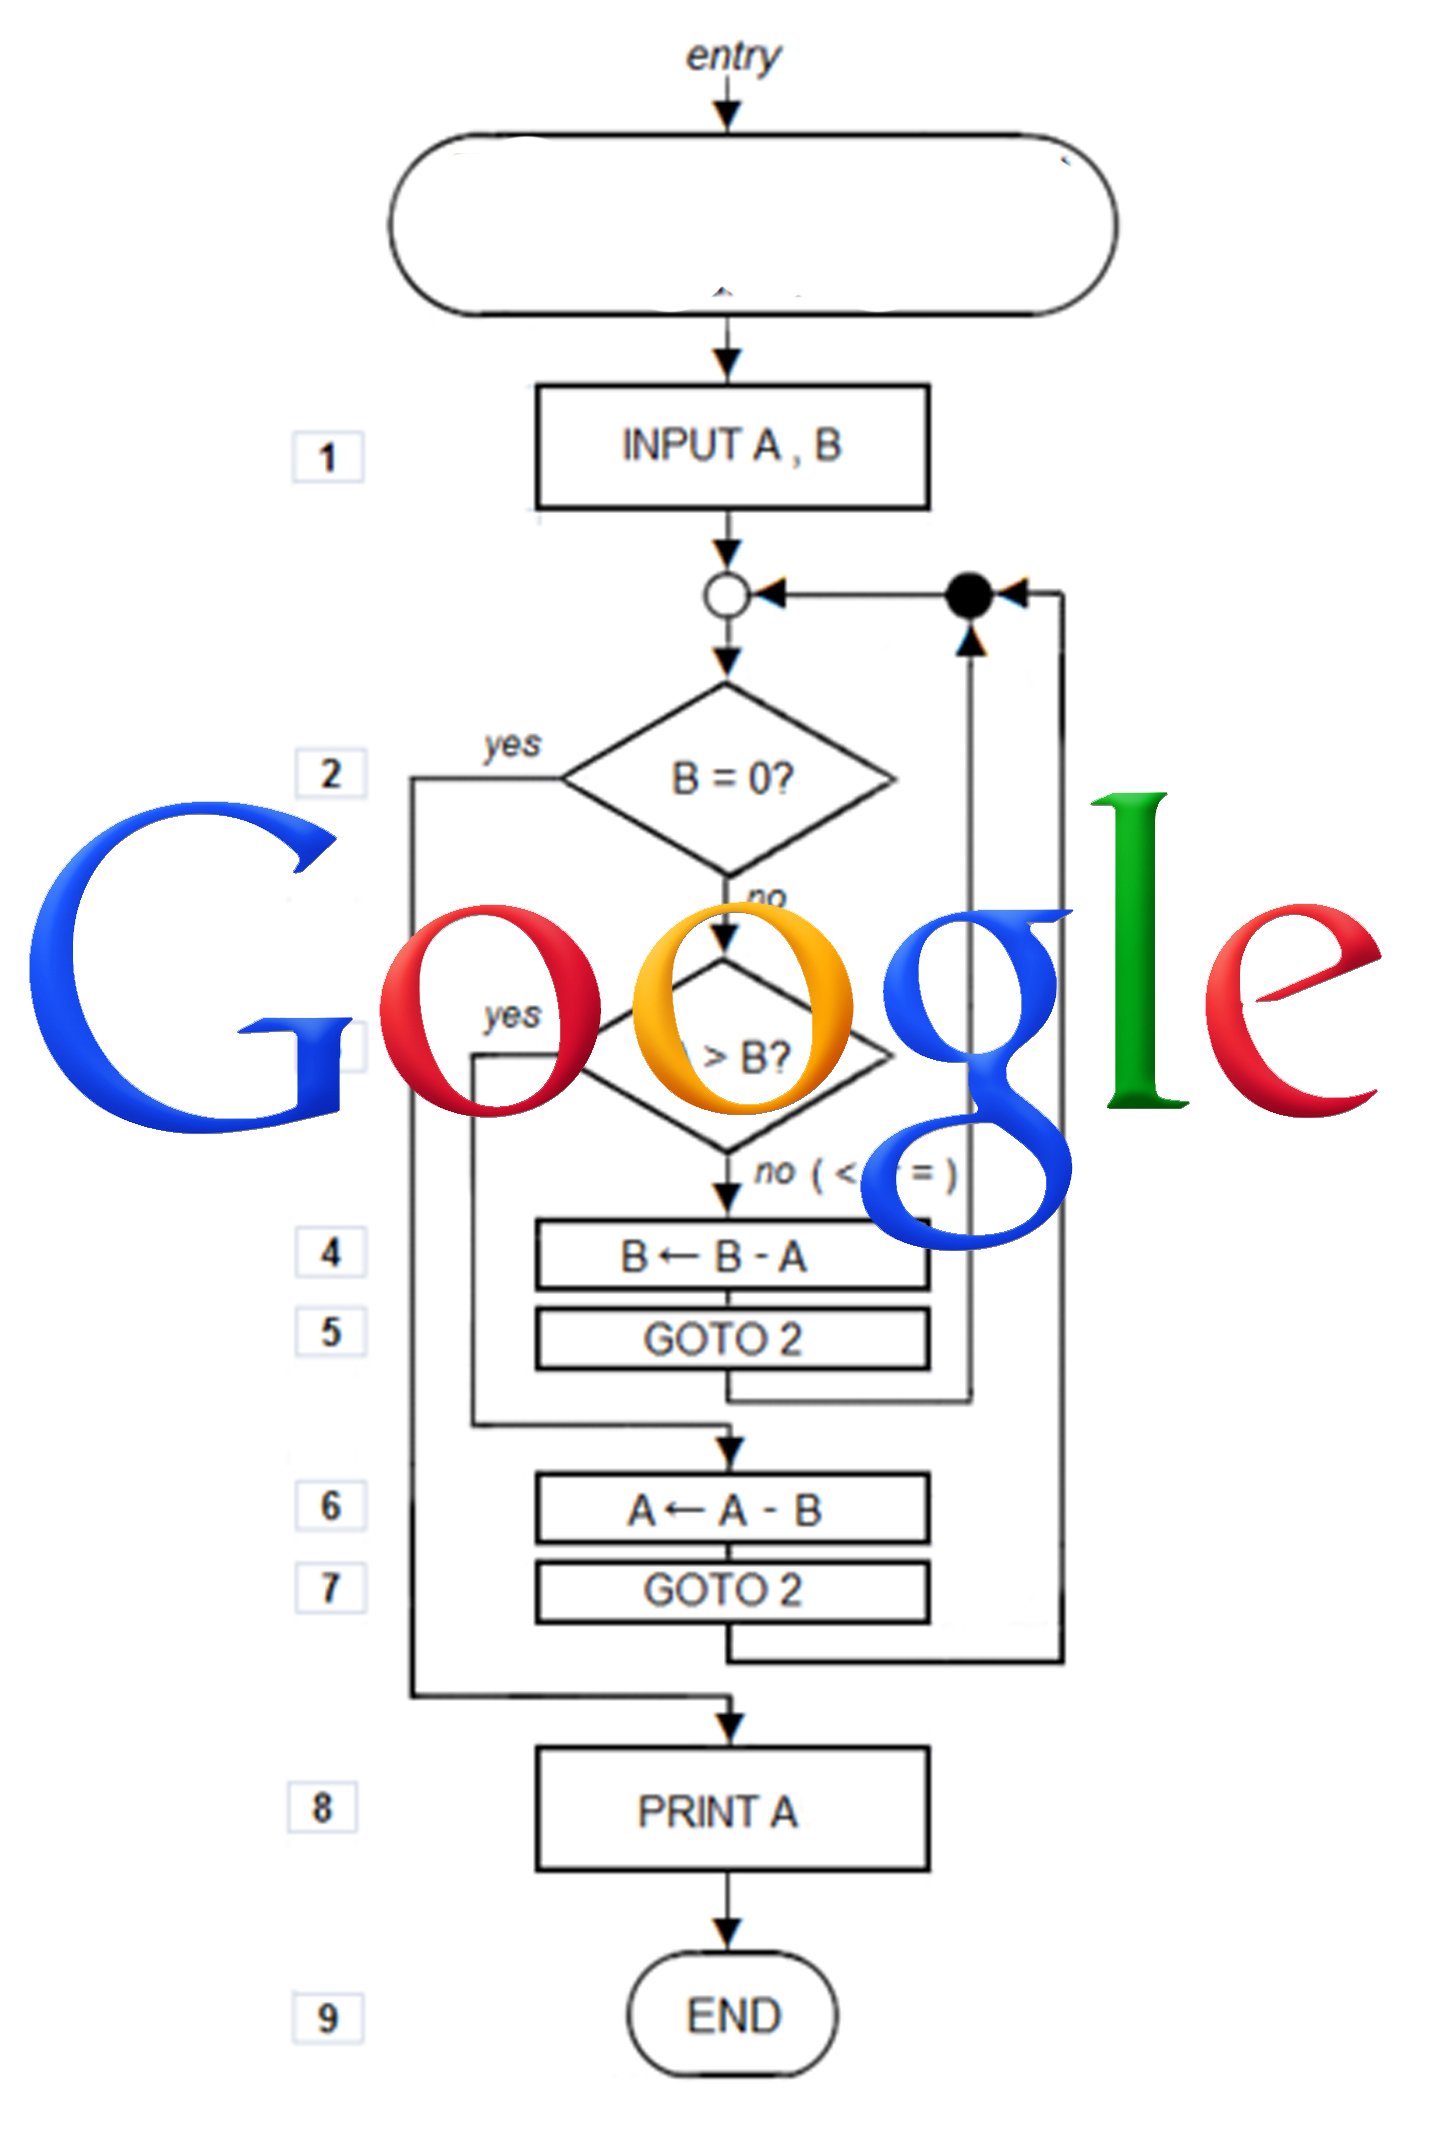 Who created Google(the search engine)? When? Why did they?